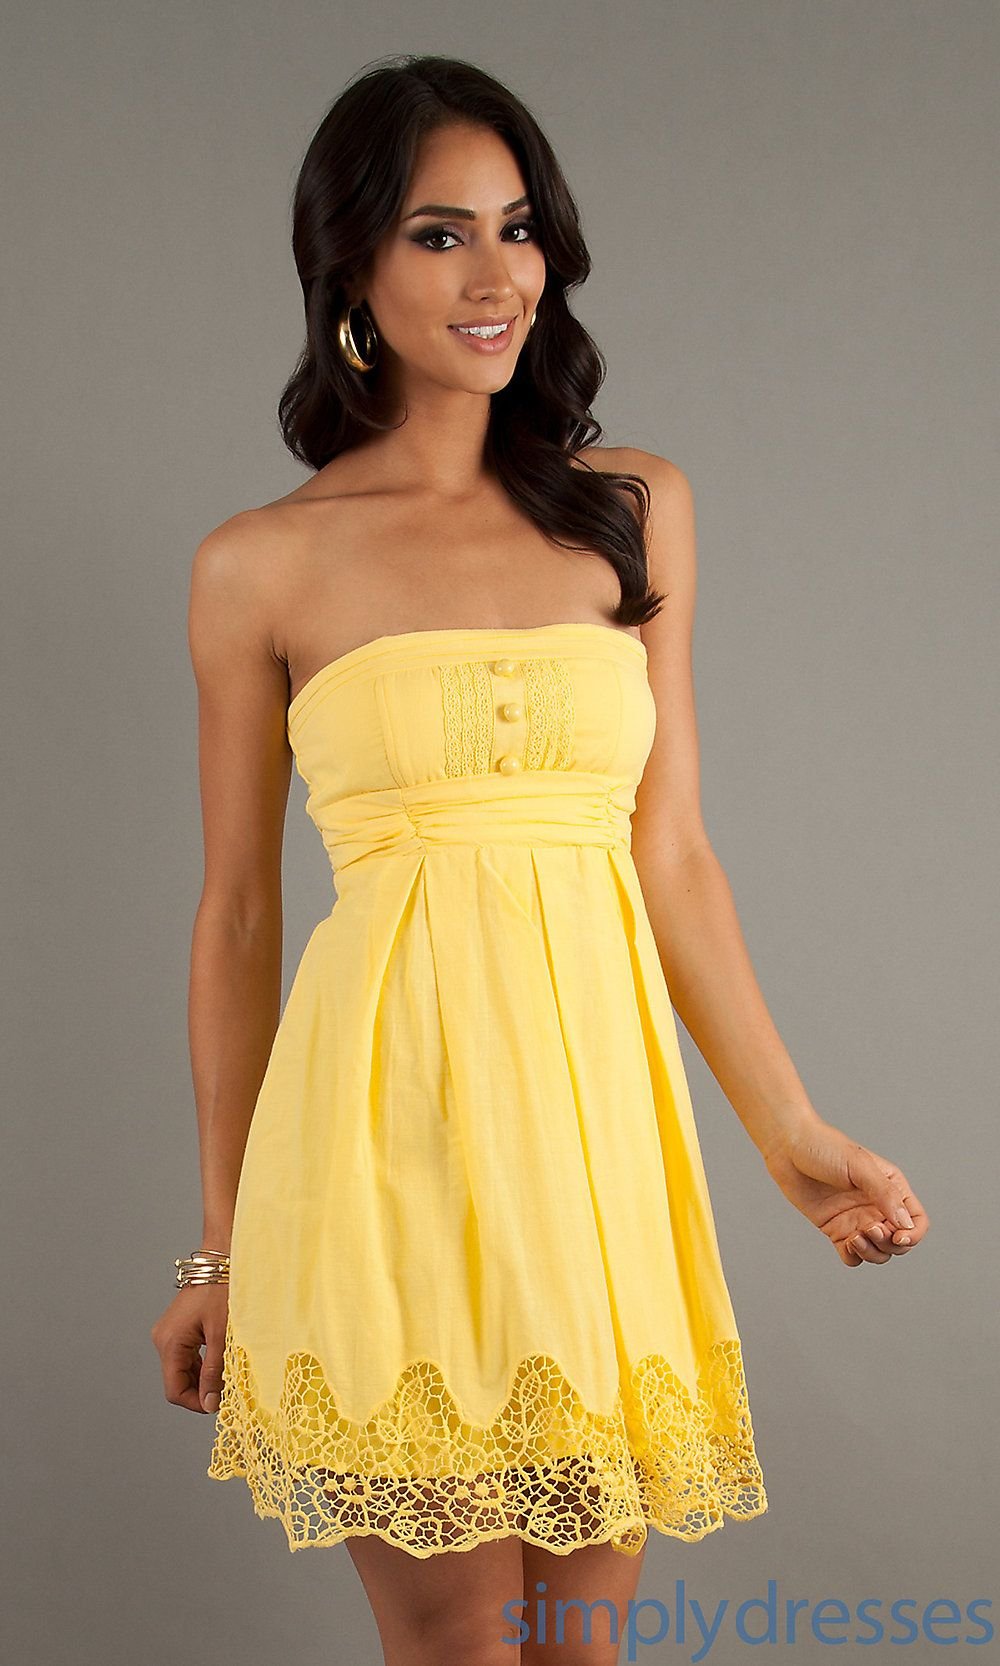 Dress, Short Casual Yellow Dress - Simply